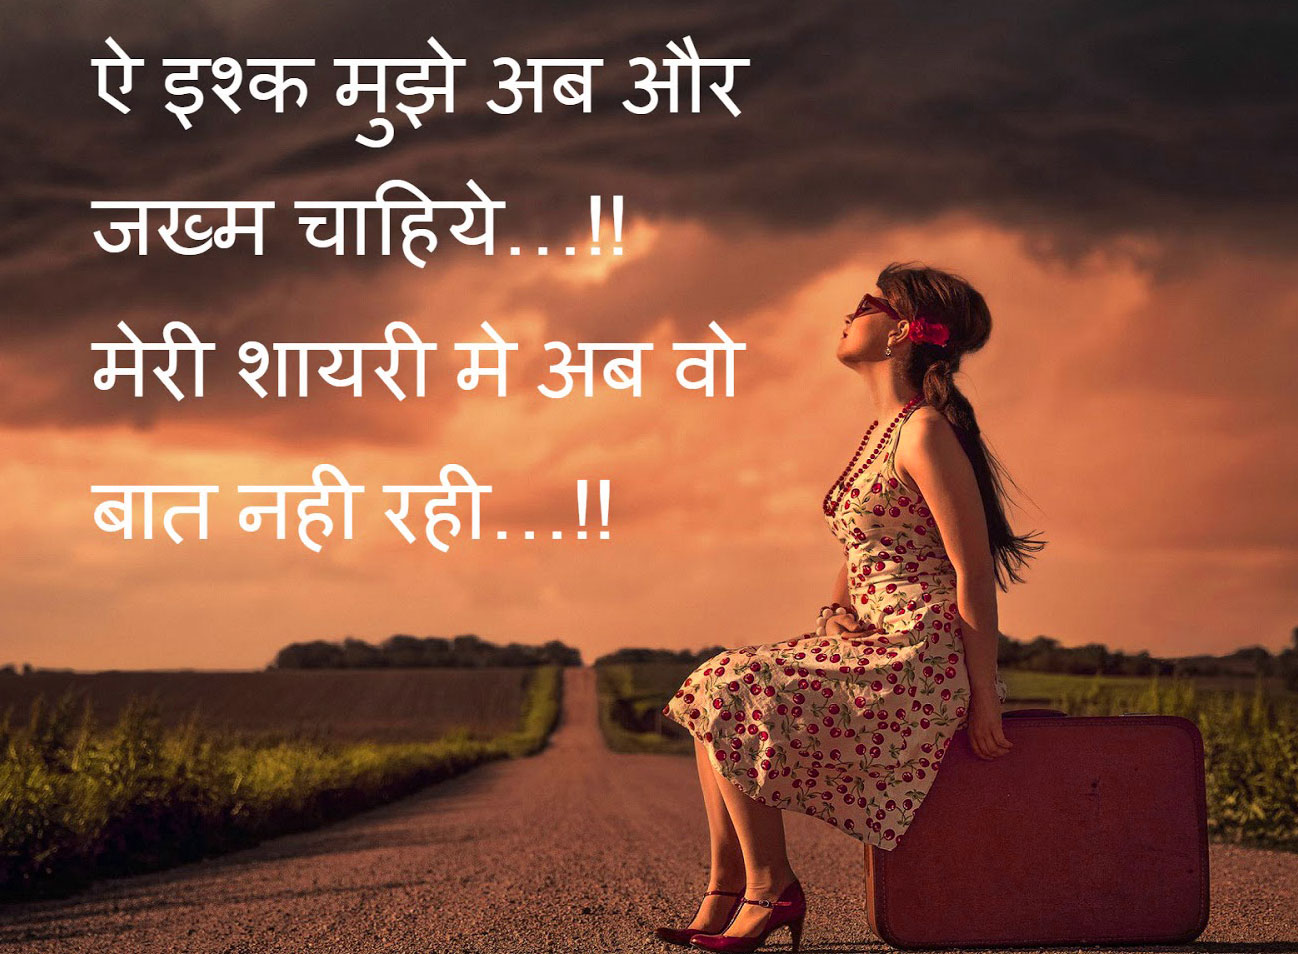 2 Line Hindi Shayari Wallpaper Pics Free Download 16